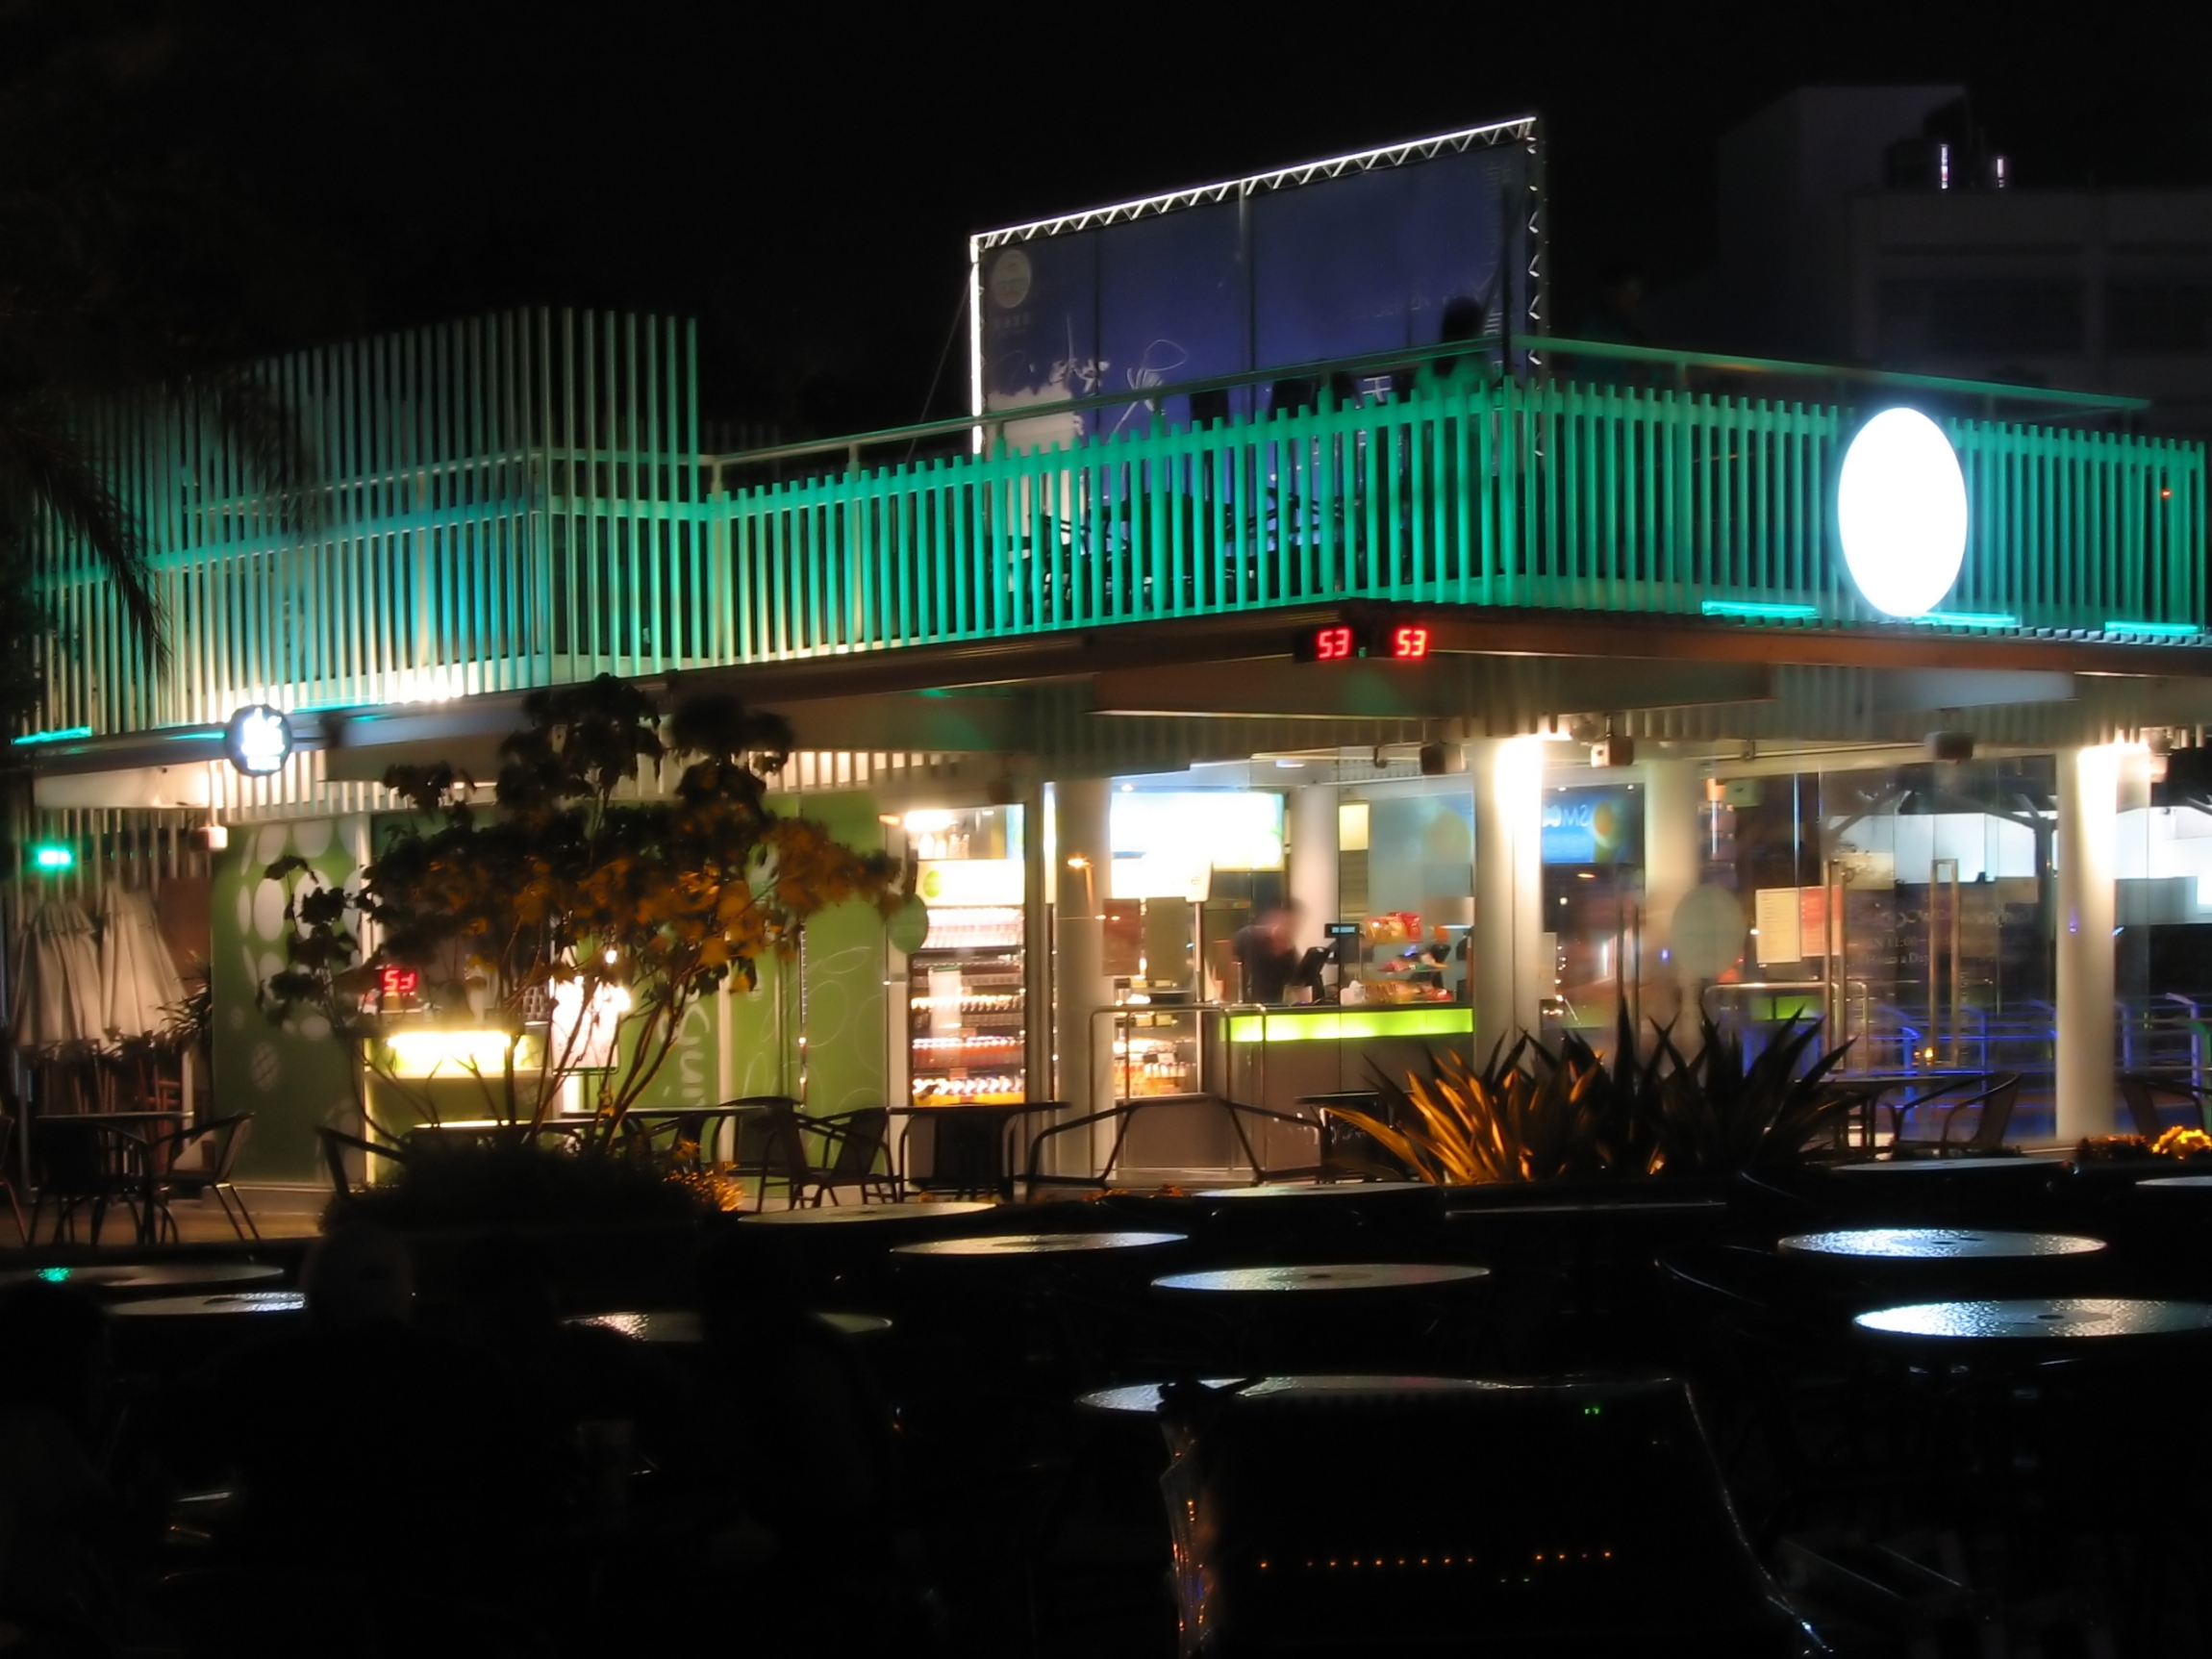 Cafe by night photo